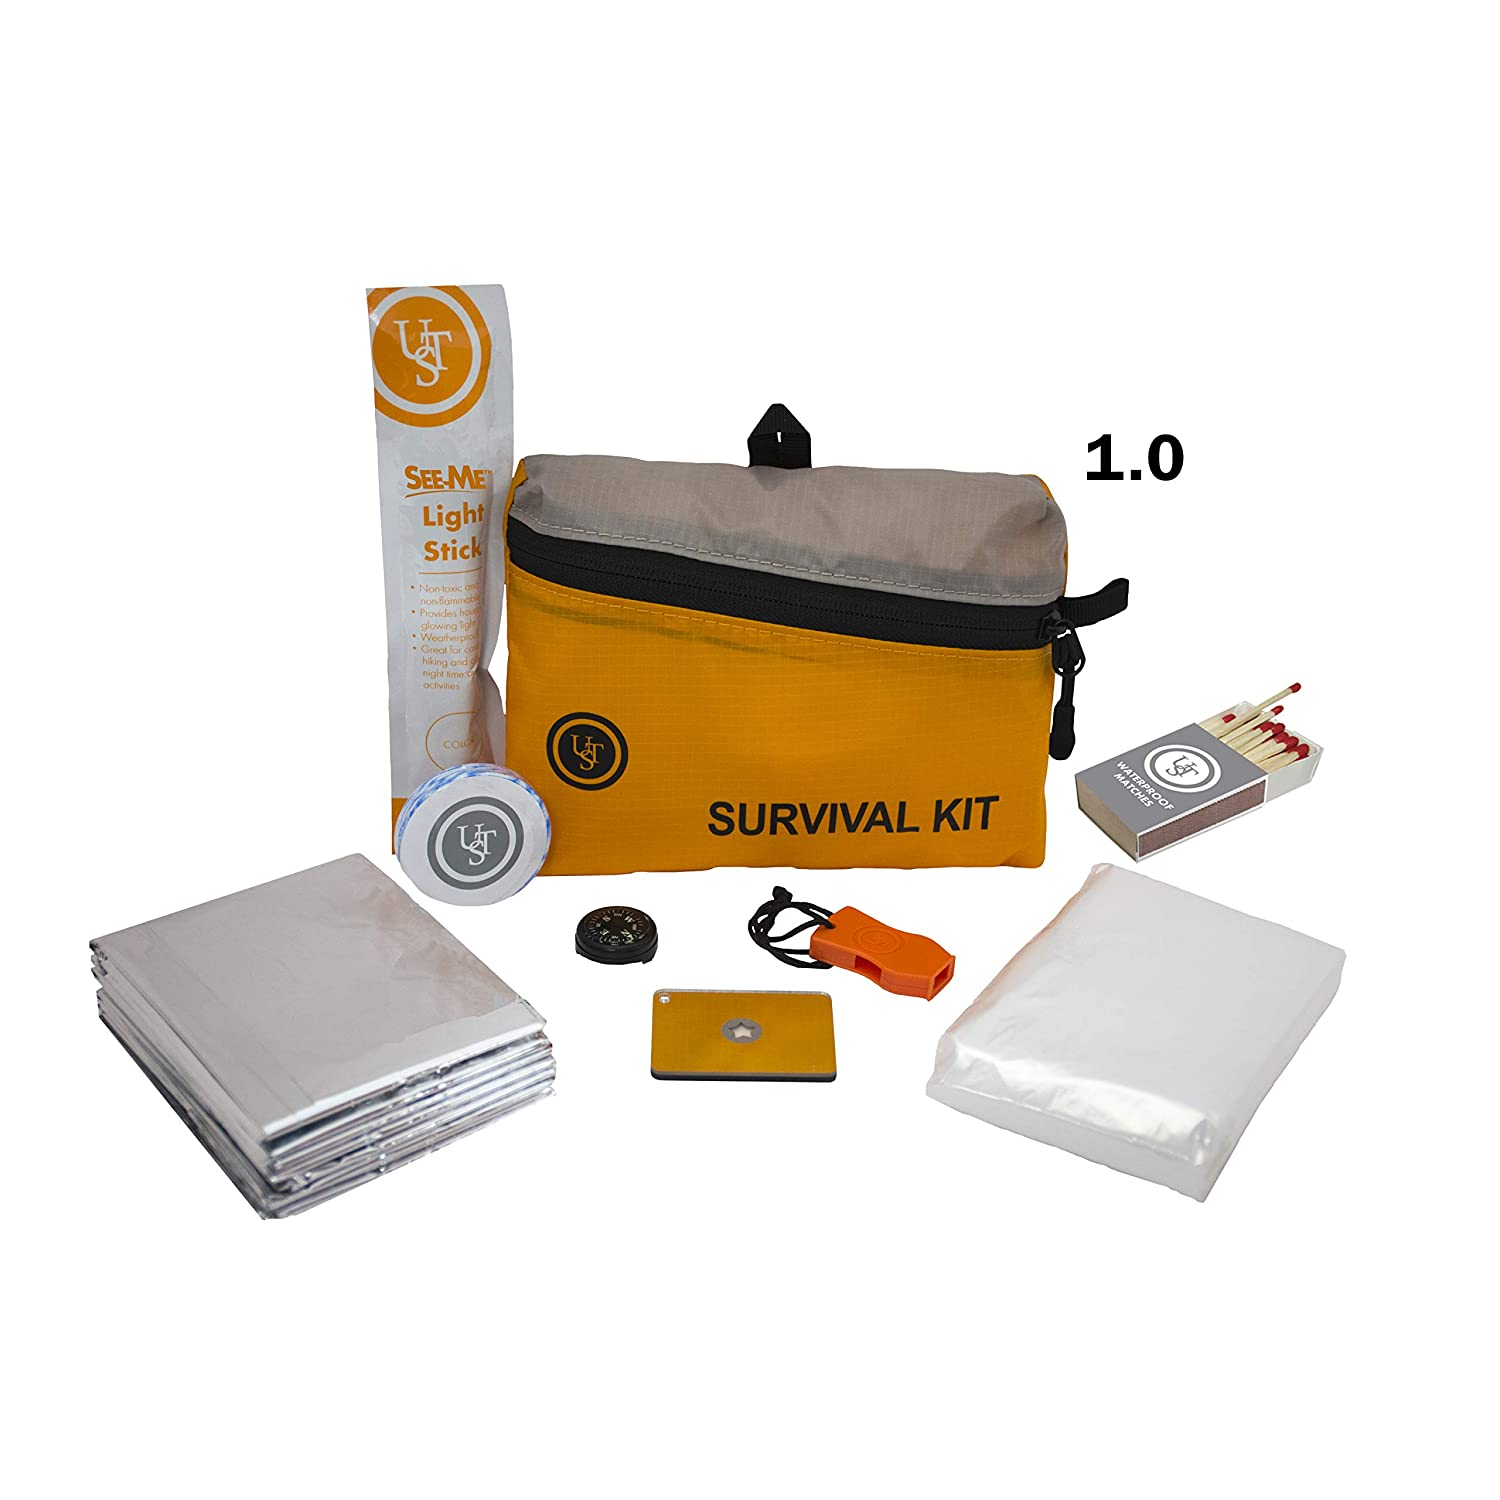 Ultimate Survival Technologies FeatherLite Survival Kit 1.0 8-Piece Essentials